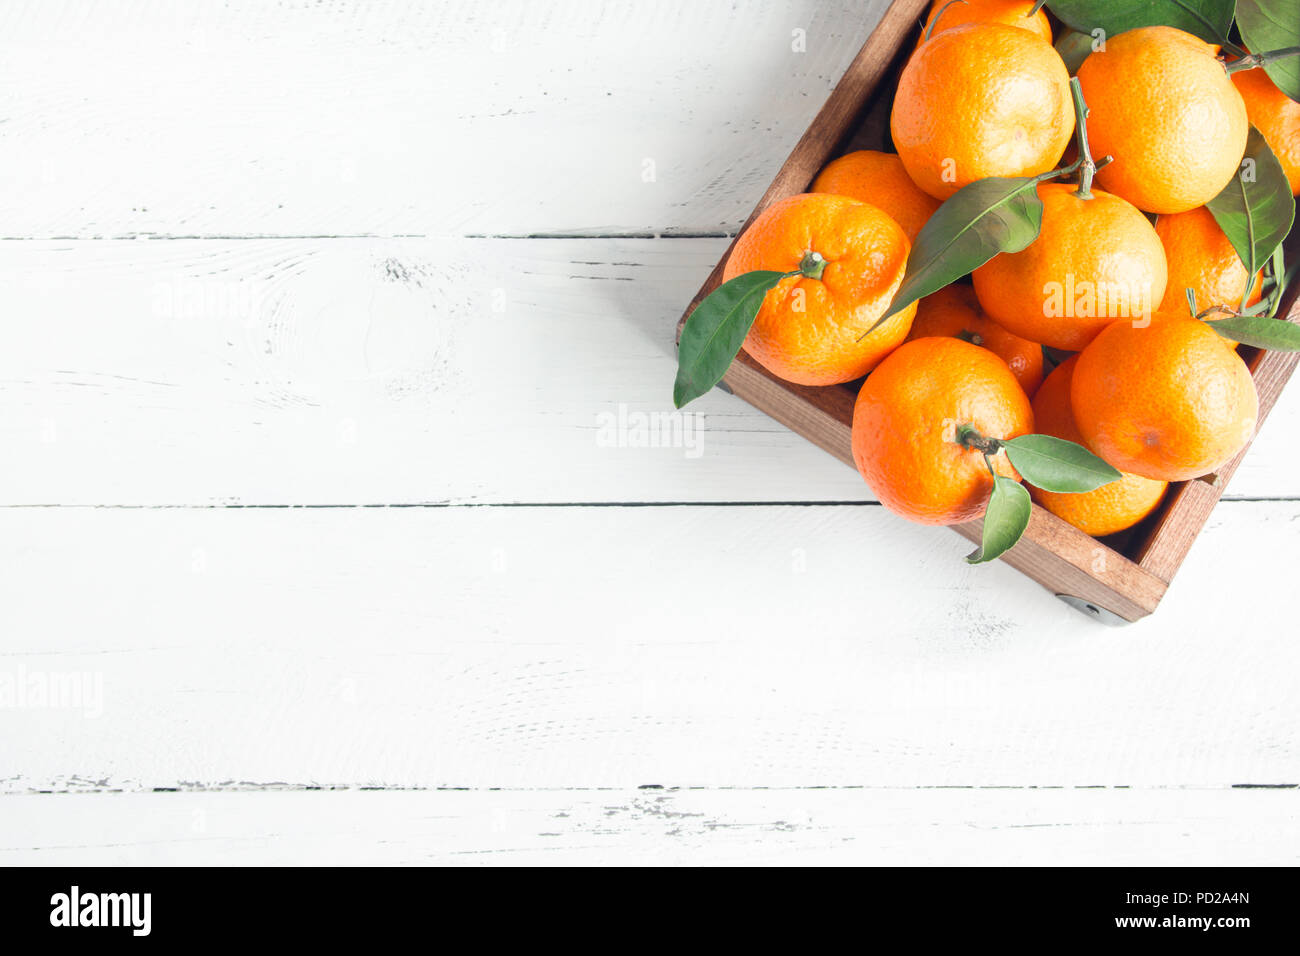 Tangerines (oranges, clementines, citrus fruits) with green leaves over white wooden background with copy space - Stock Image